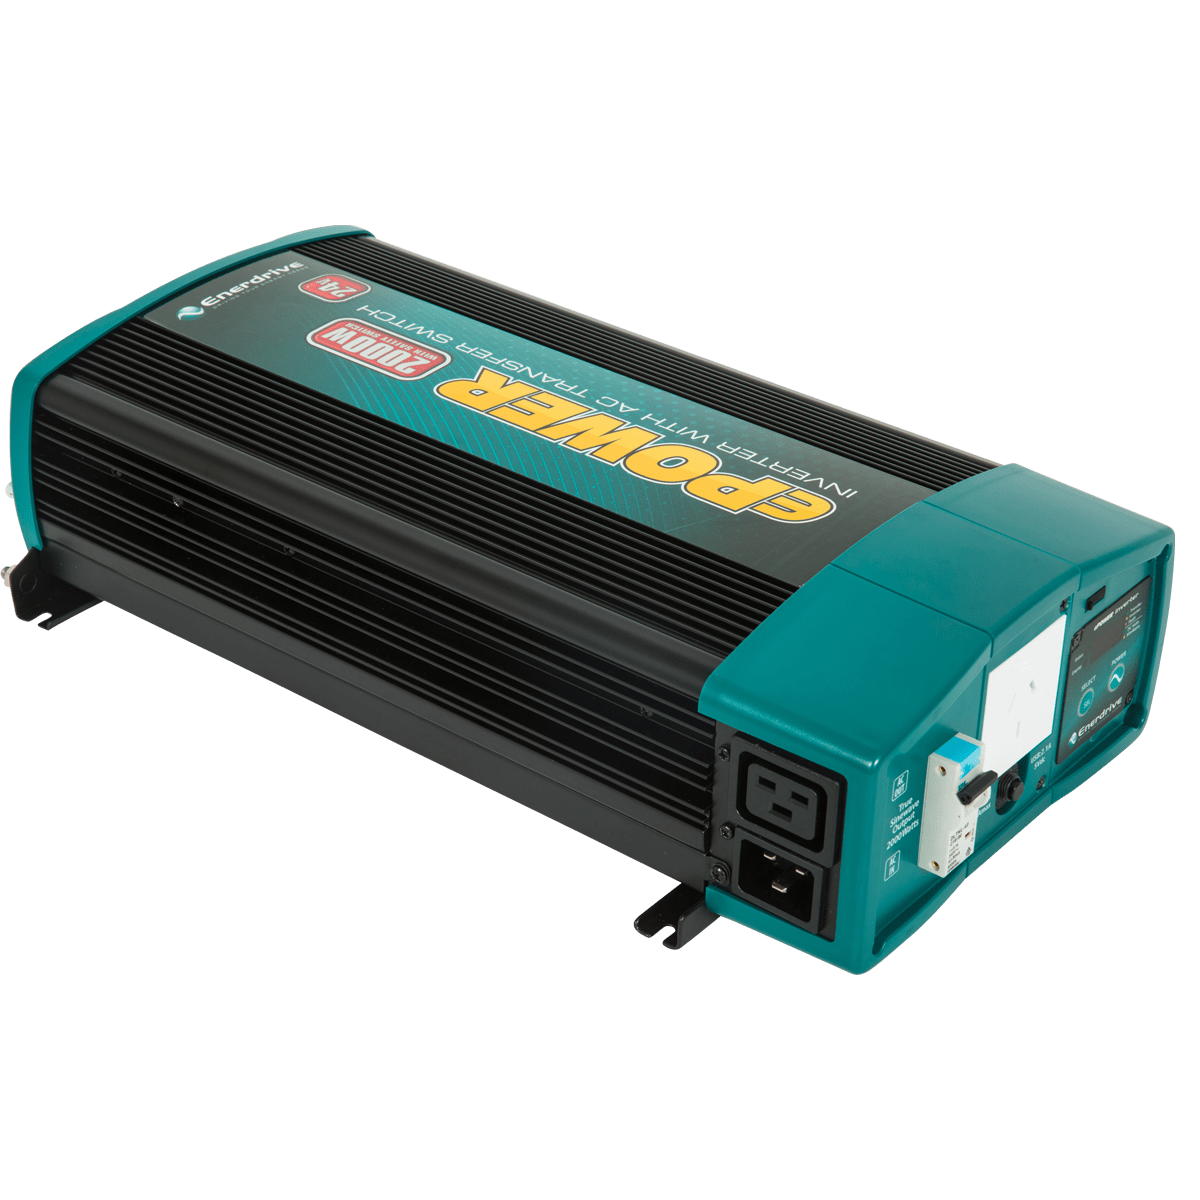 New EPOWER Inverter With AC Transfer & Safety Switch